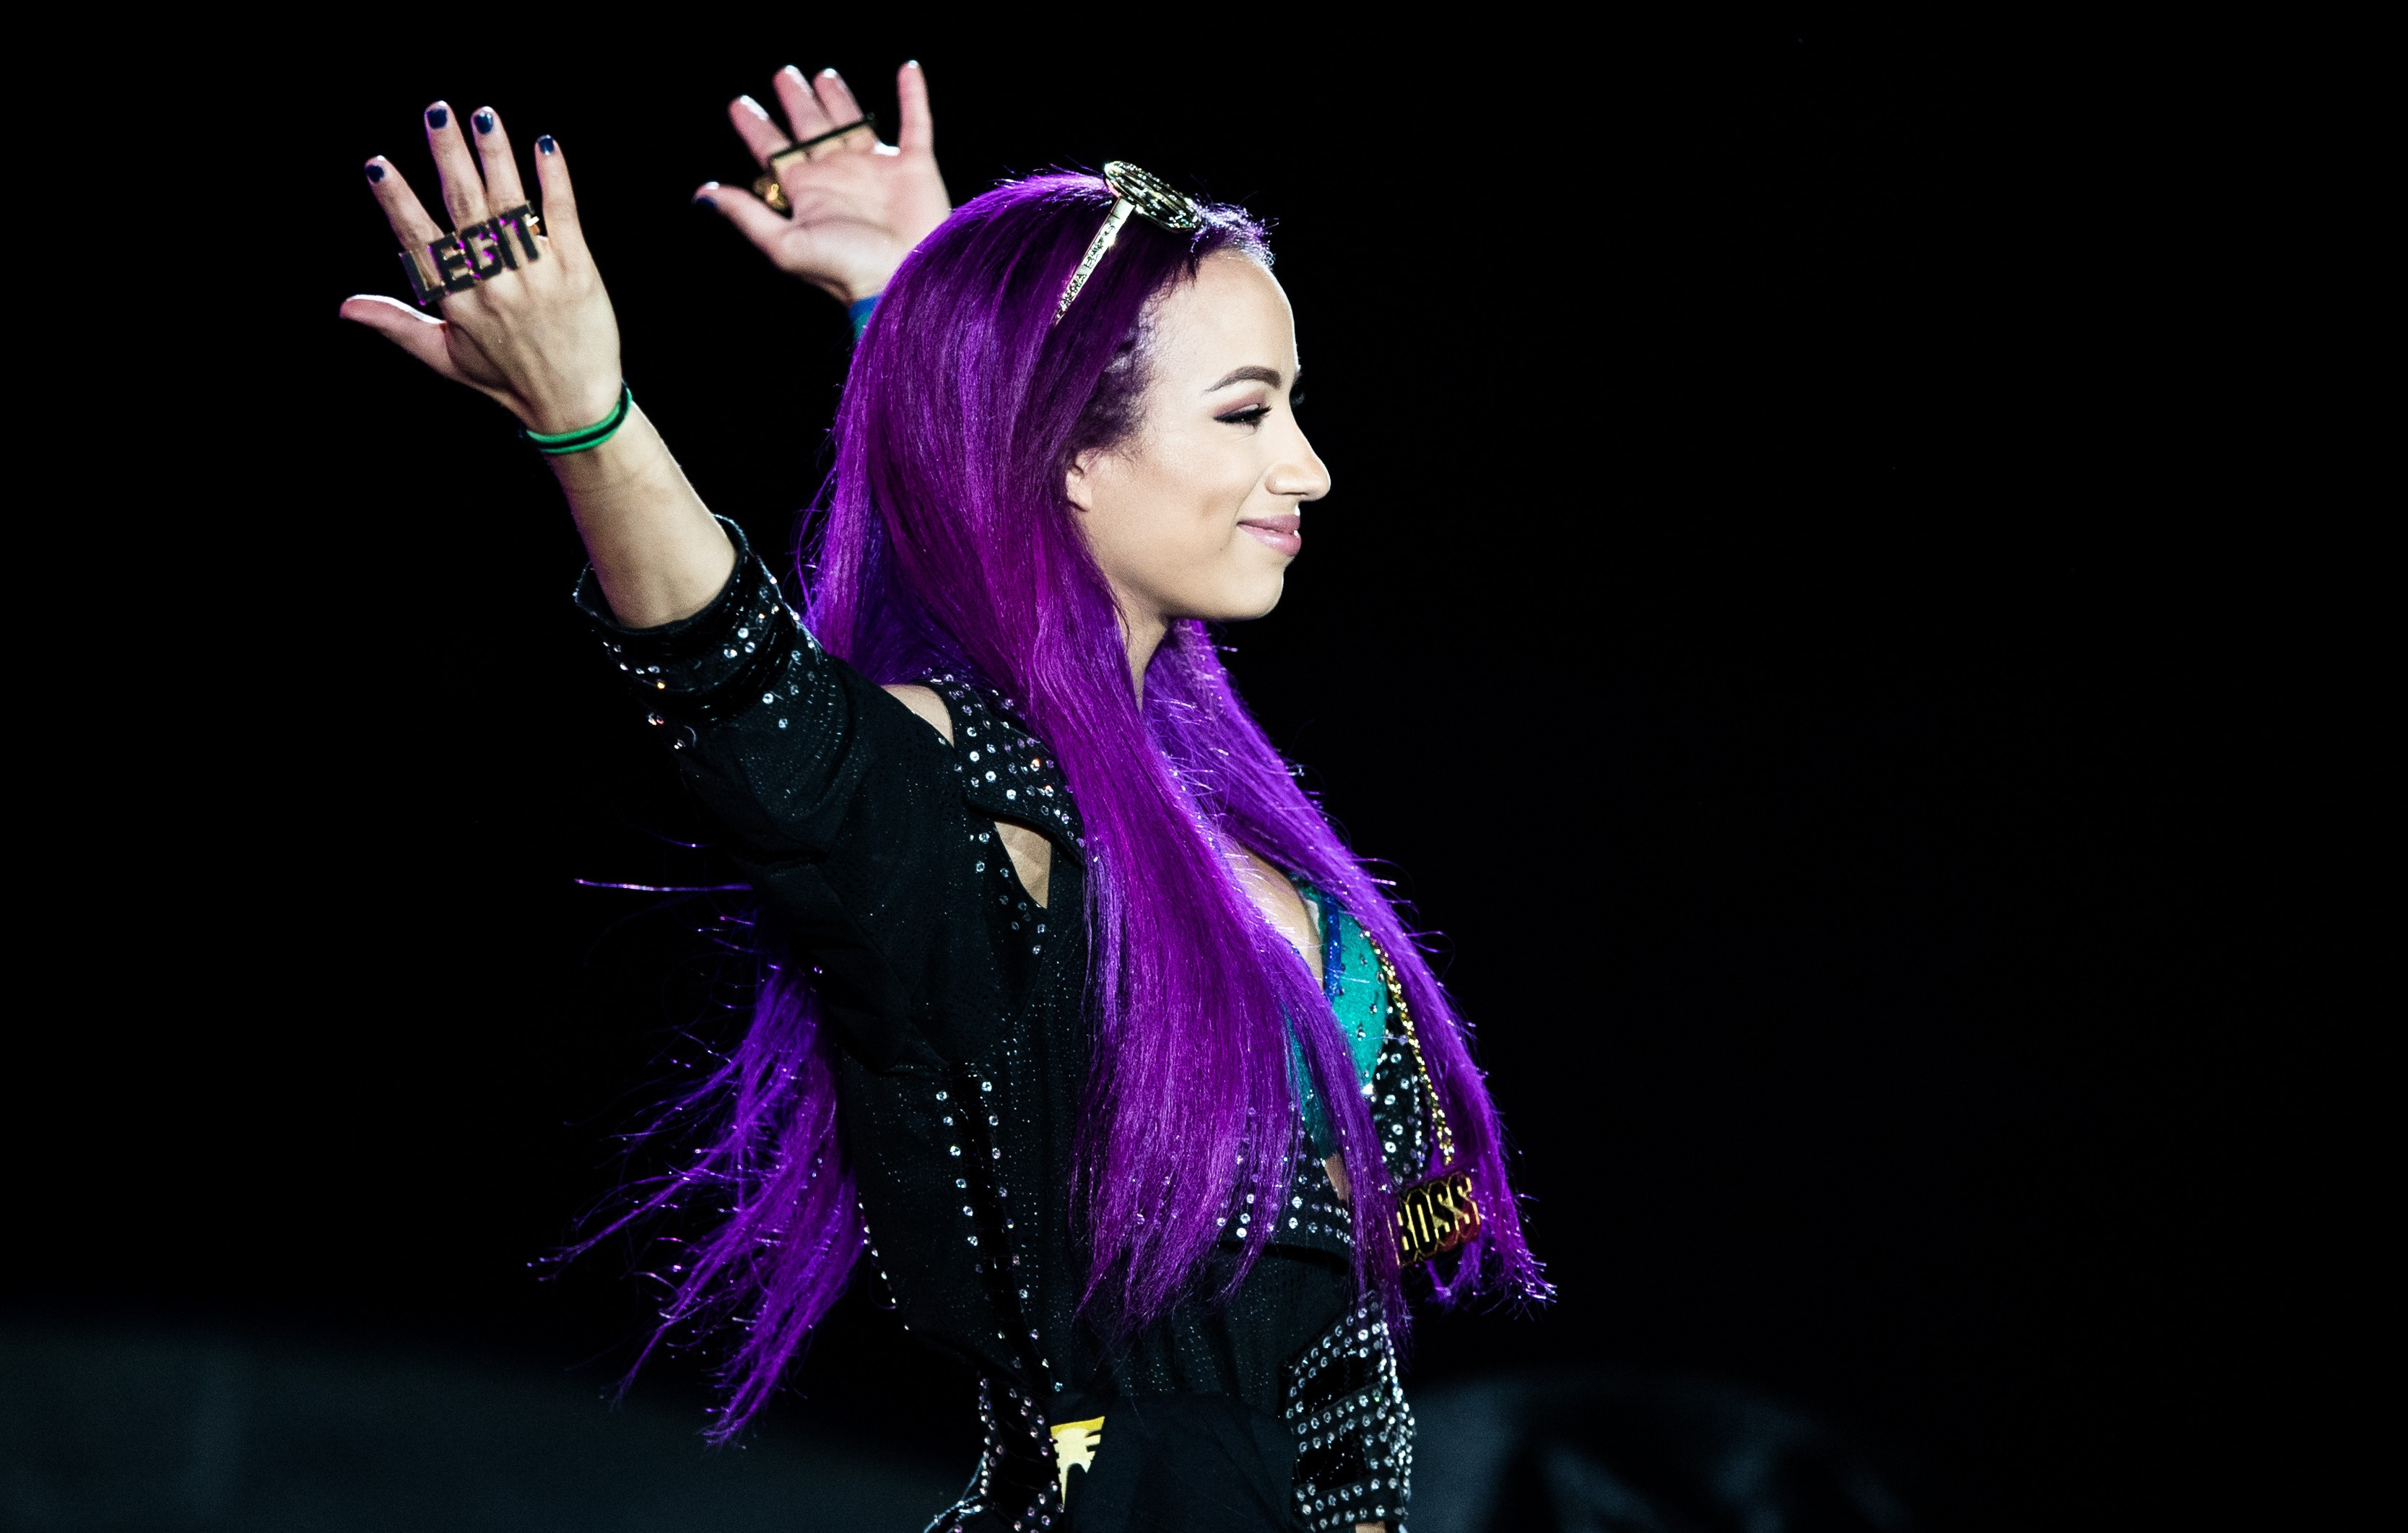 WWE Star Sasha Banks Gets A Song From Mountains Goats